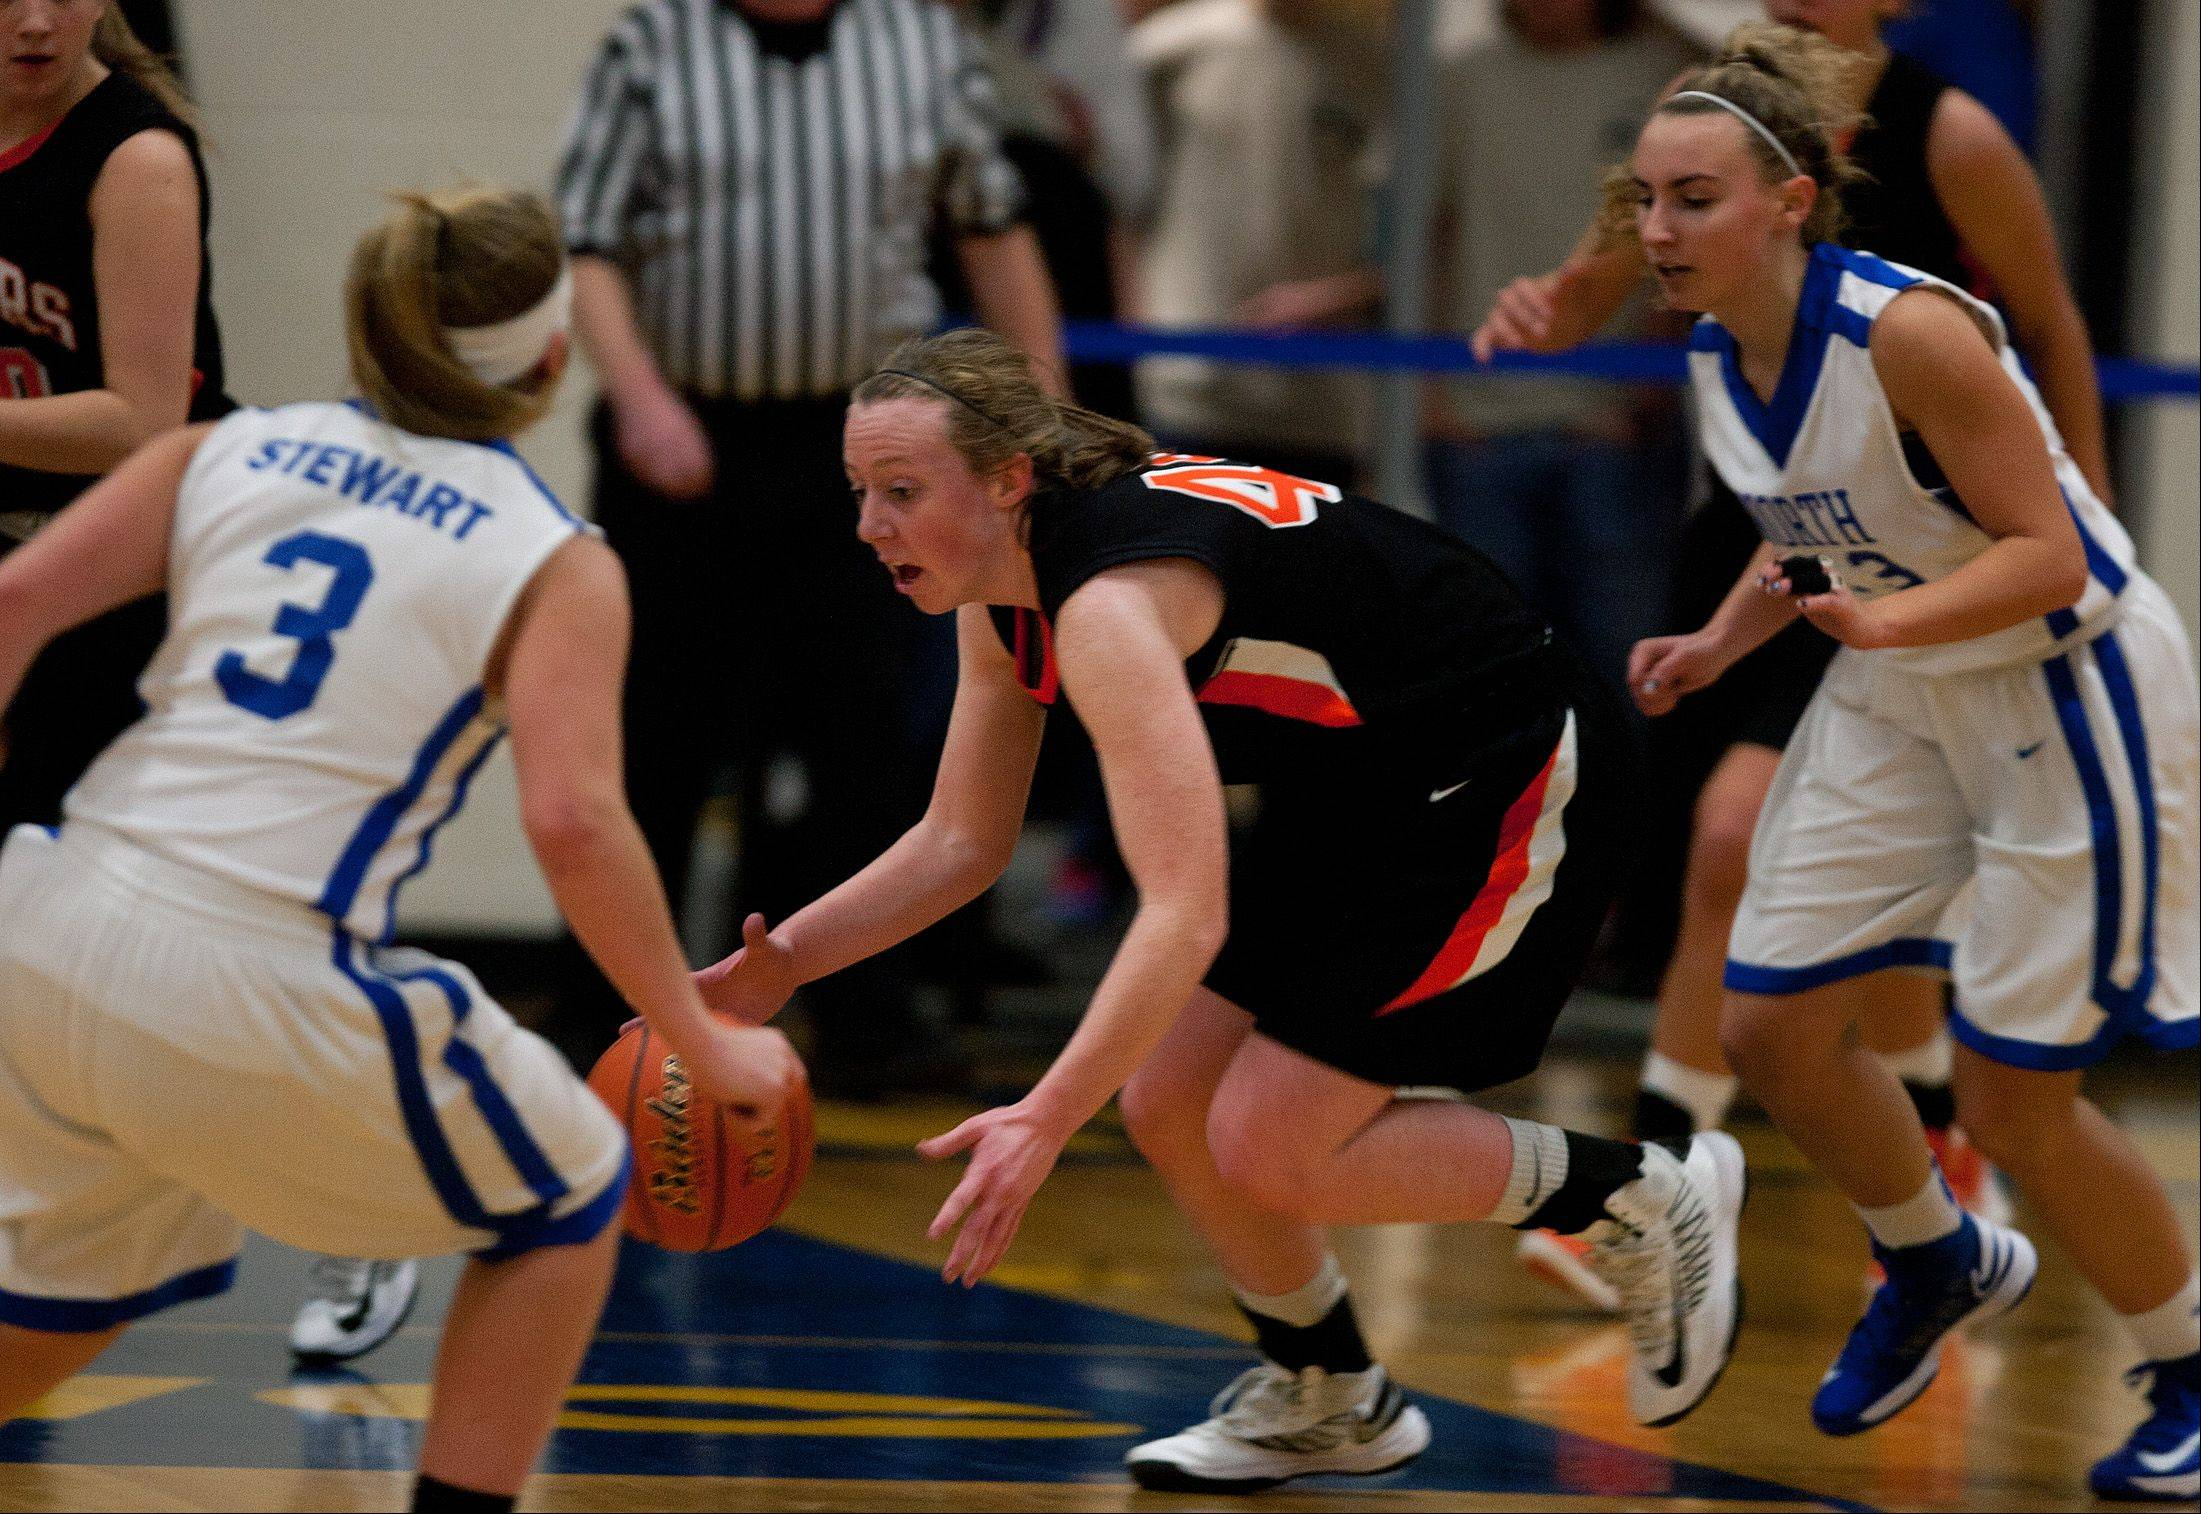 Wheaton Warrenville South's Olivia Linebarger (44) dribbles through the Wheaton North defense, during girls basketball action in Wheaton.